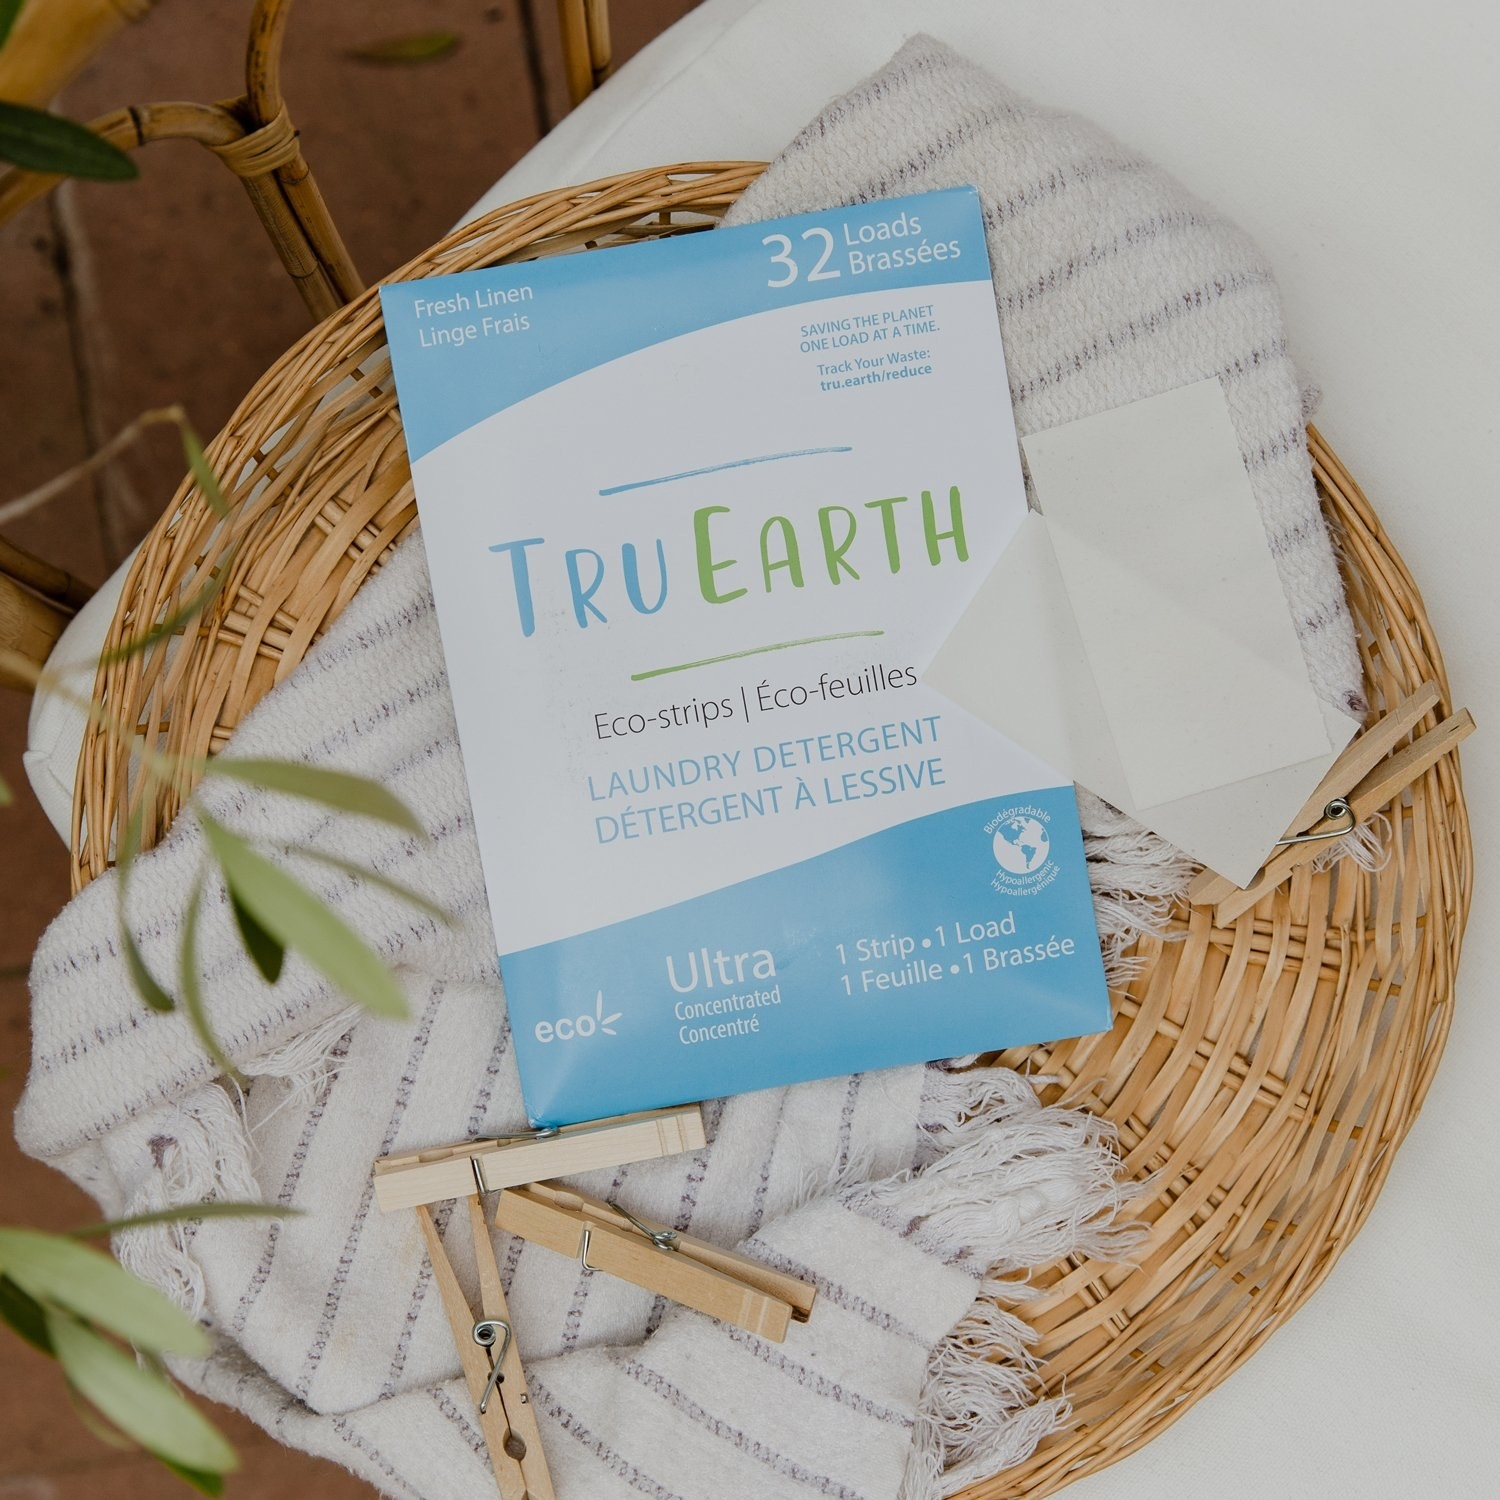 a bag of tru earth eco-strips laundry detergent in a woven basket with a cloth and clothes pins